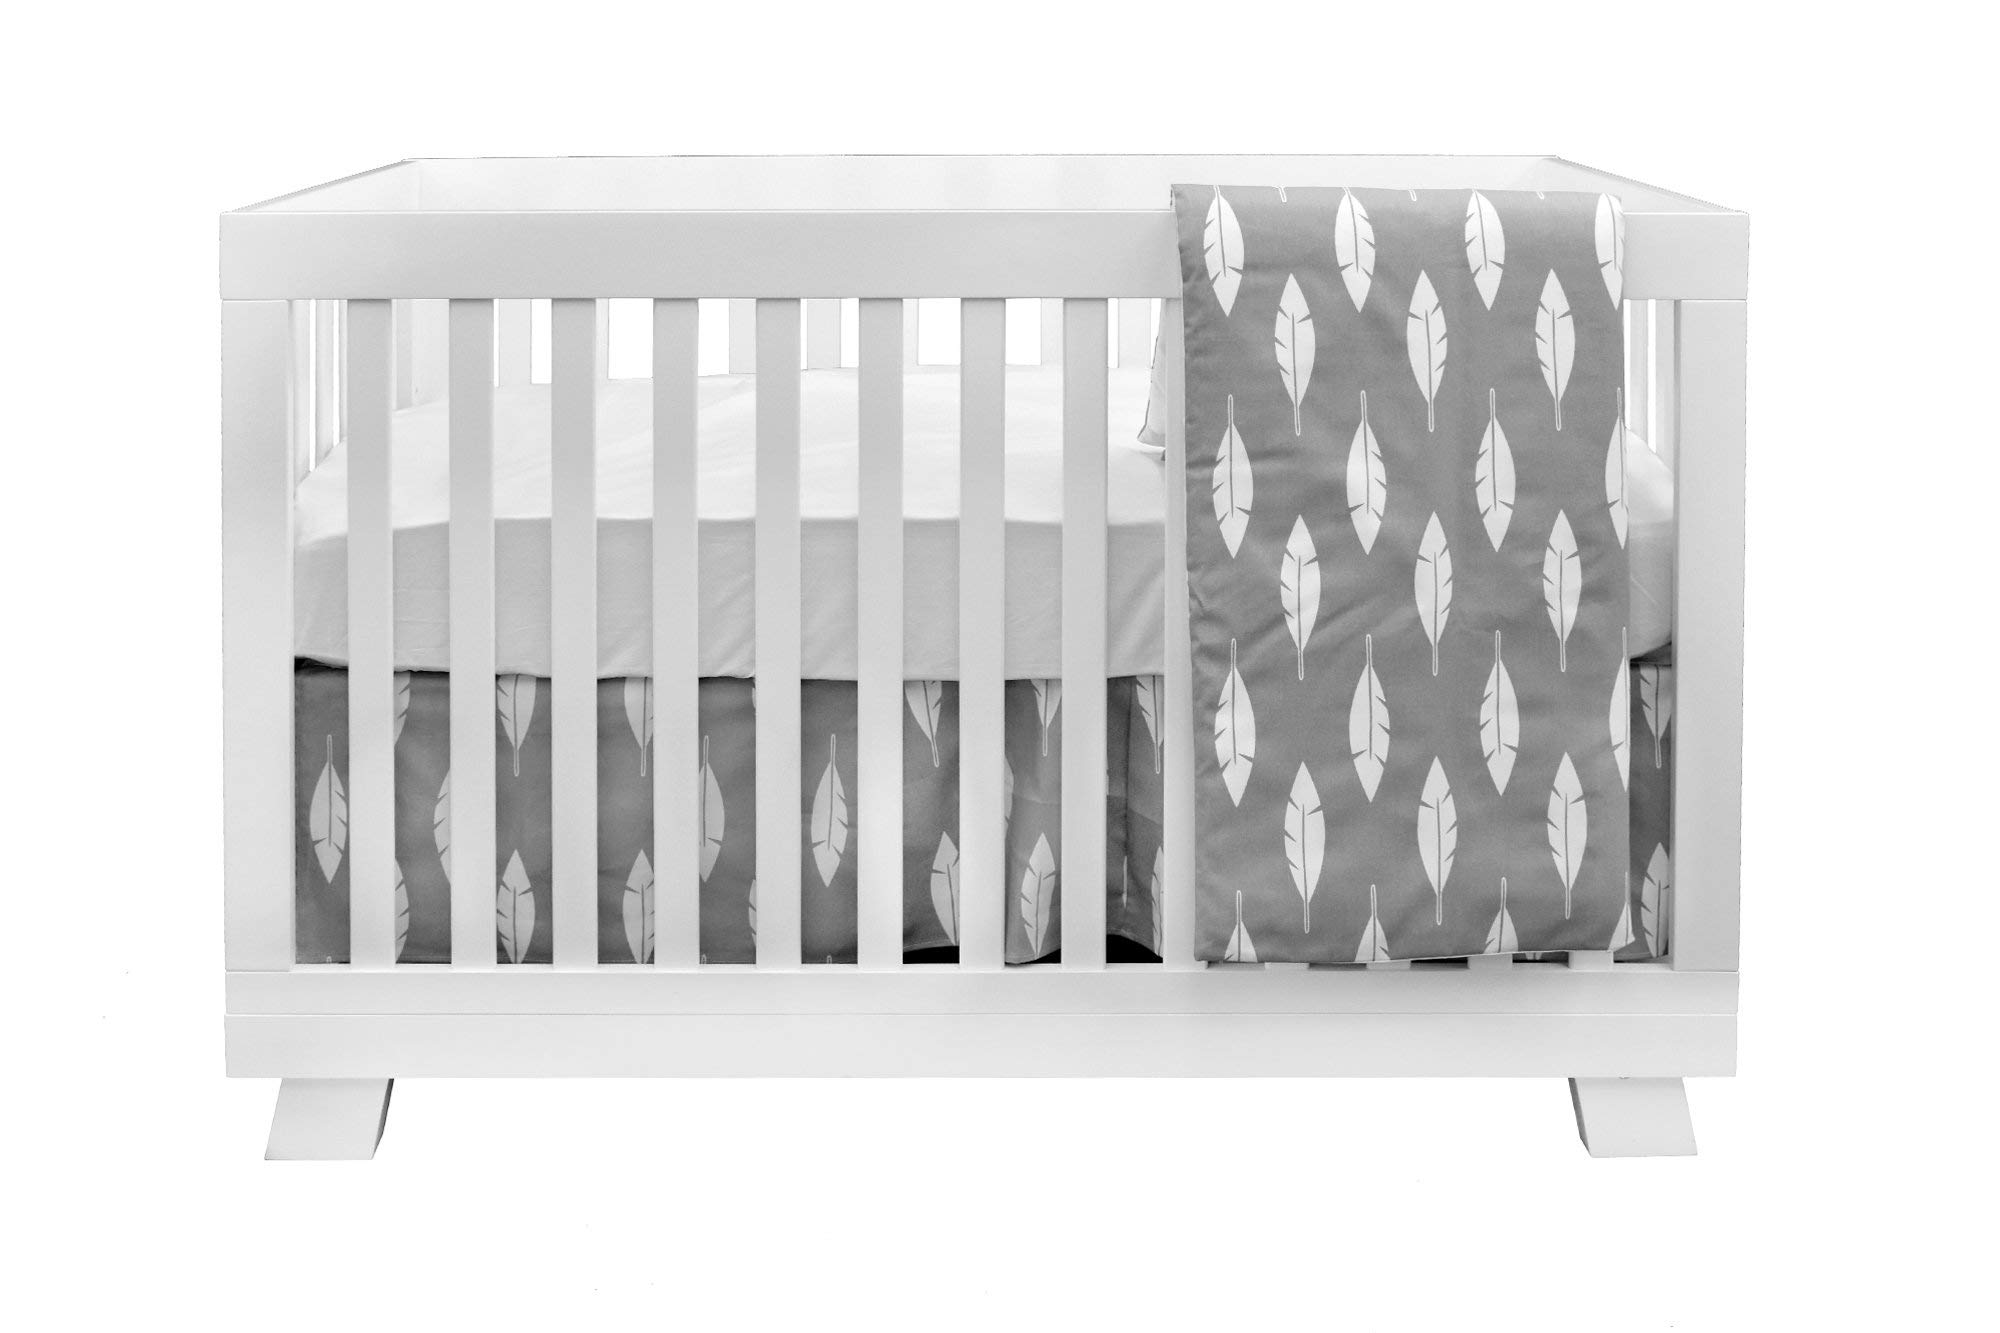 BOOBEYEH & DESIGN Baby Crib Bedding 4 Piece Set, Perfect for Baby Girls and Boys, Includes Gray and White Feather Design, Fitted Sheet, Crib Comforter, Comforter Cover, Skirt. by BOOBEYEH & DESIGN (Image #3)